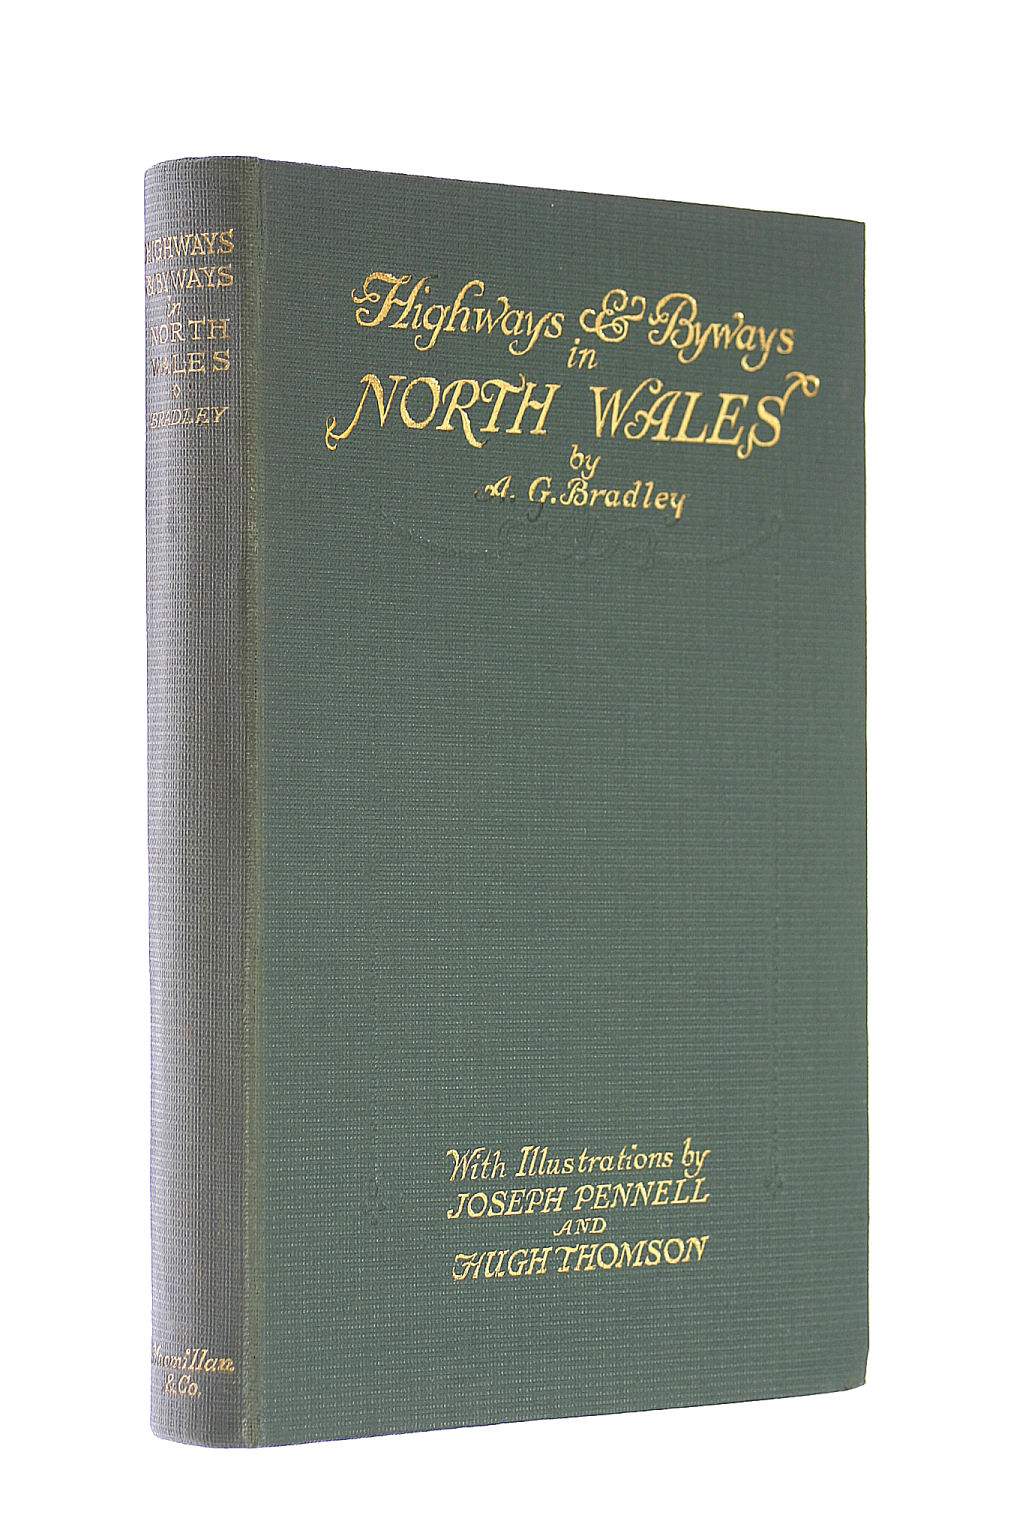 Image for Highways & Byways in North Wales